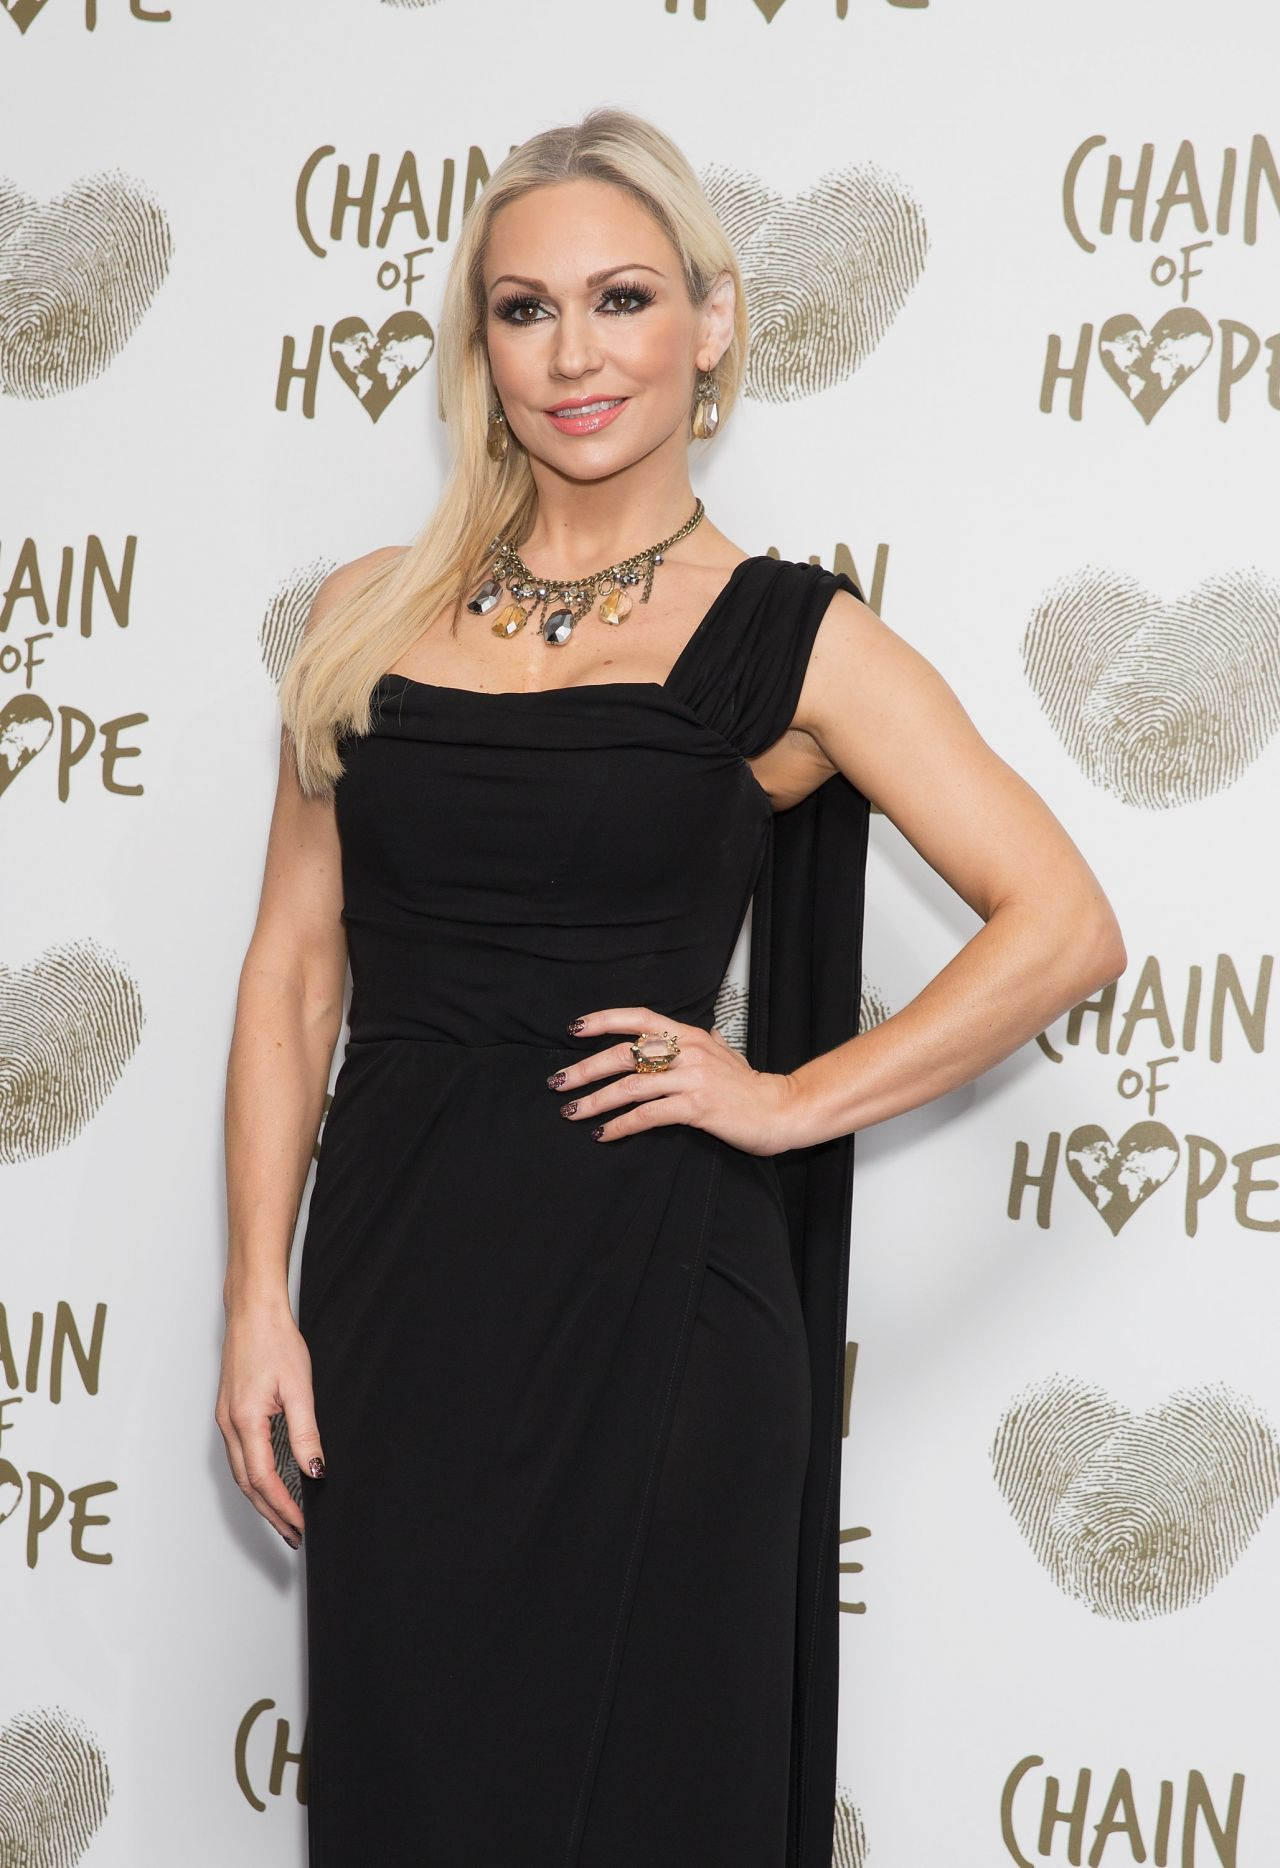 Kristina Rihanoff - 2014 Chain of Hope Gala Ball in London